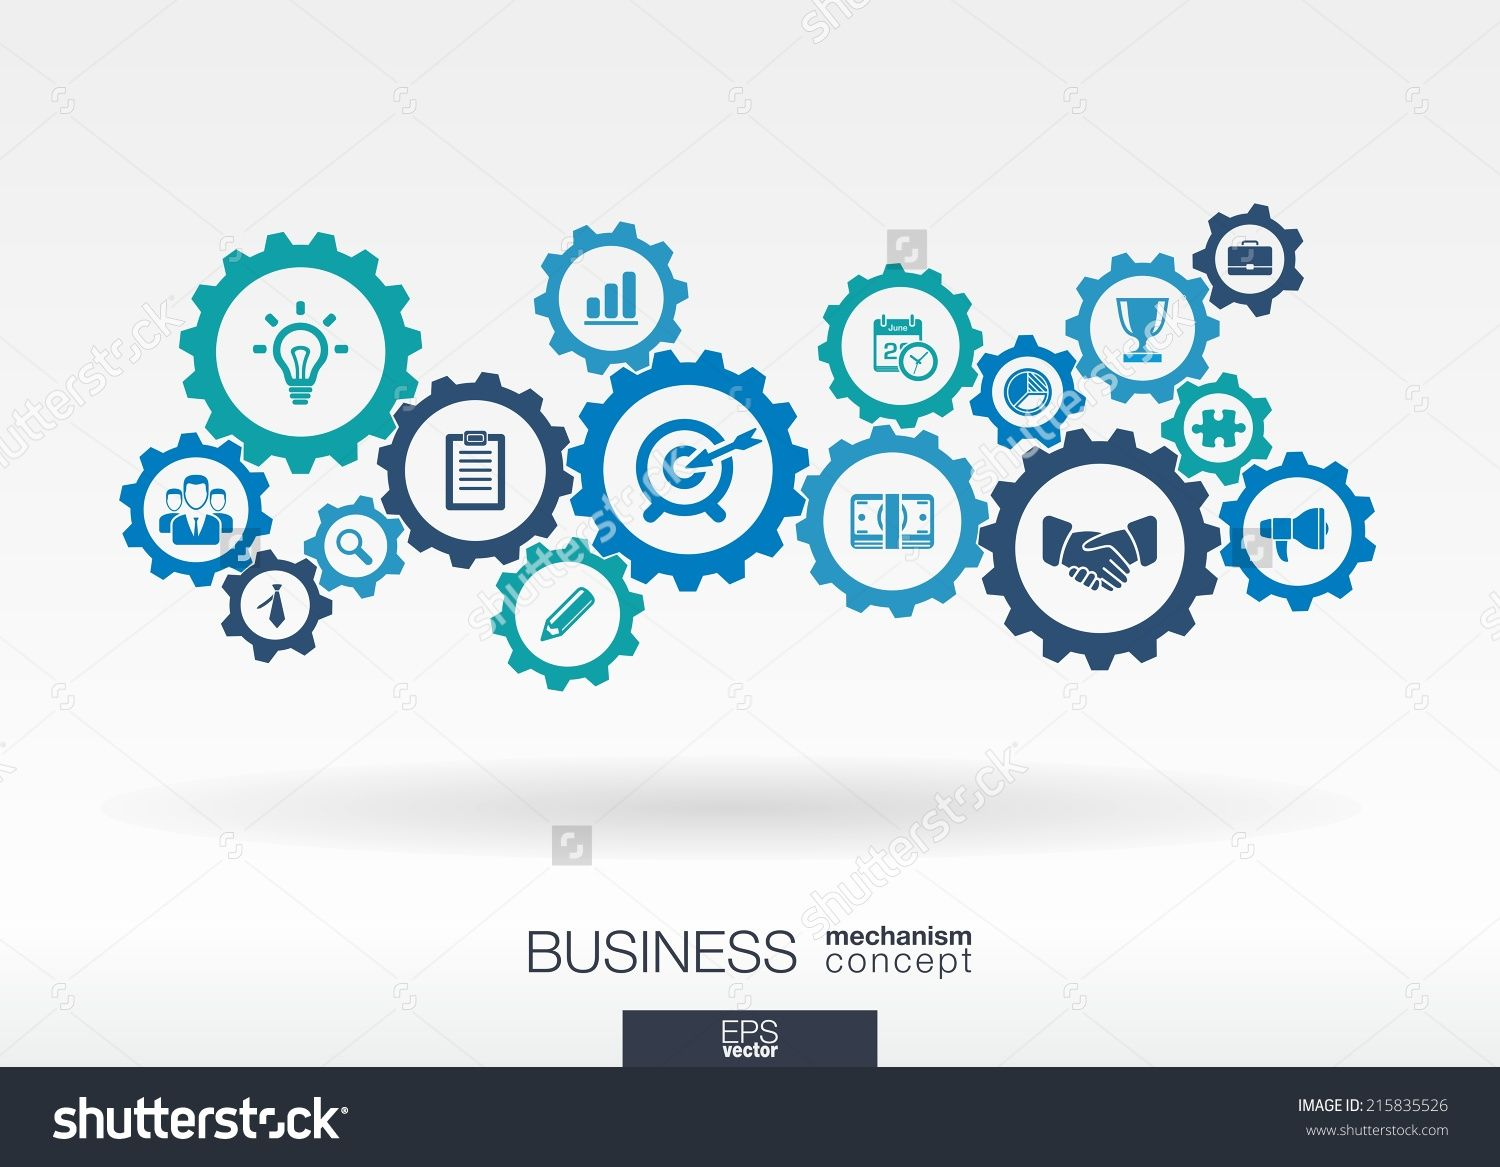 Business Mechanism Concept Abstract Background With Connected